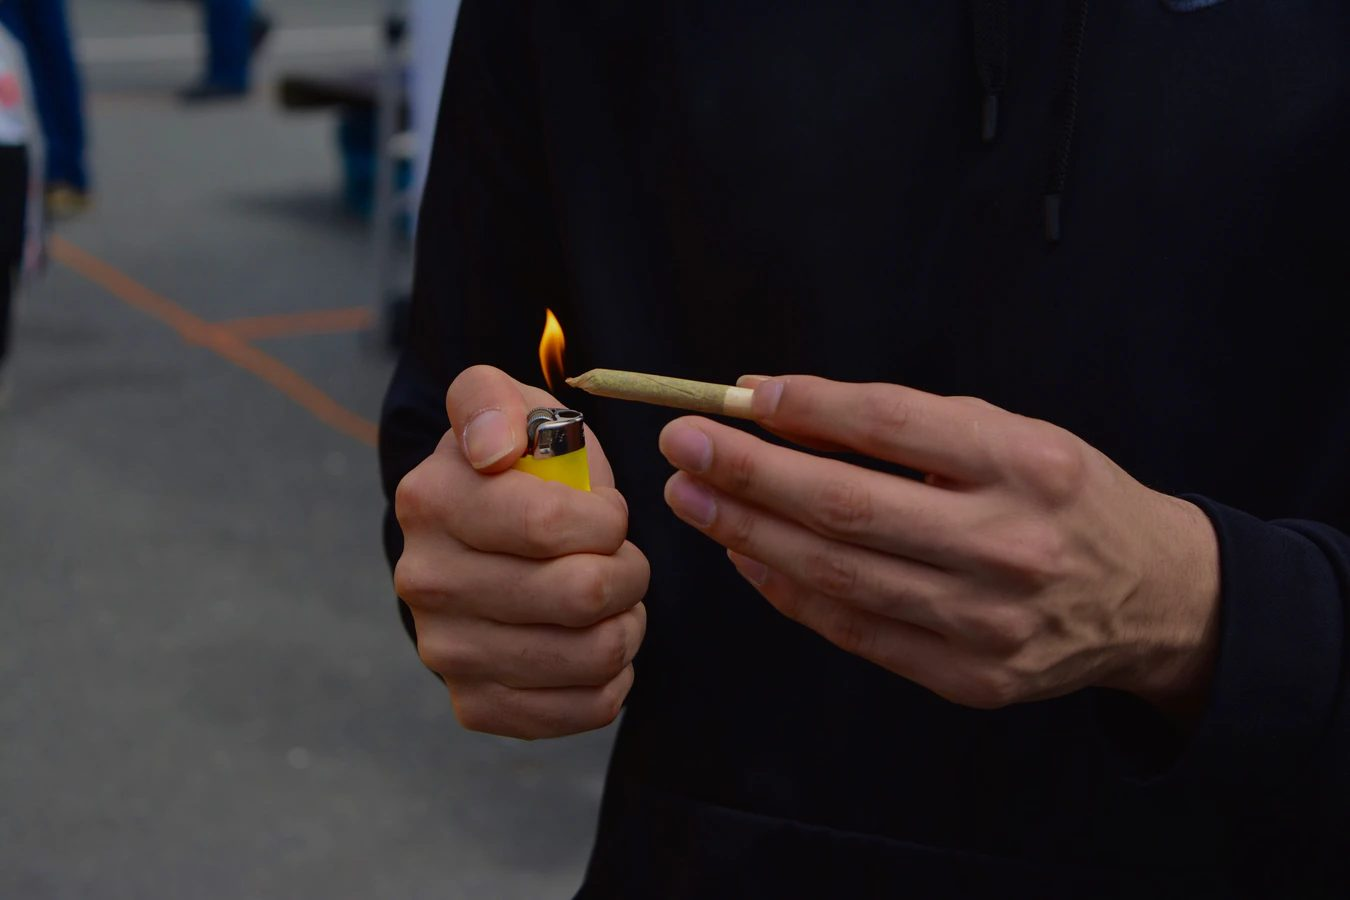 Man lighting up a joint